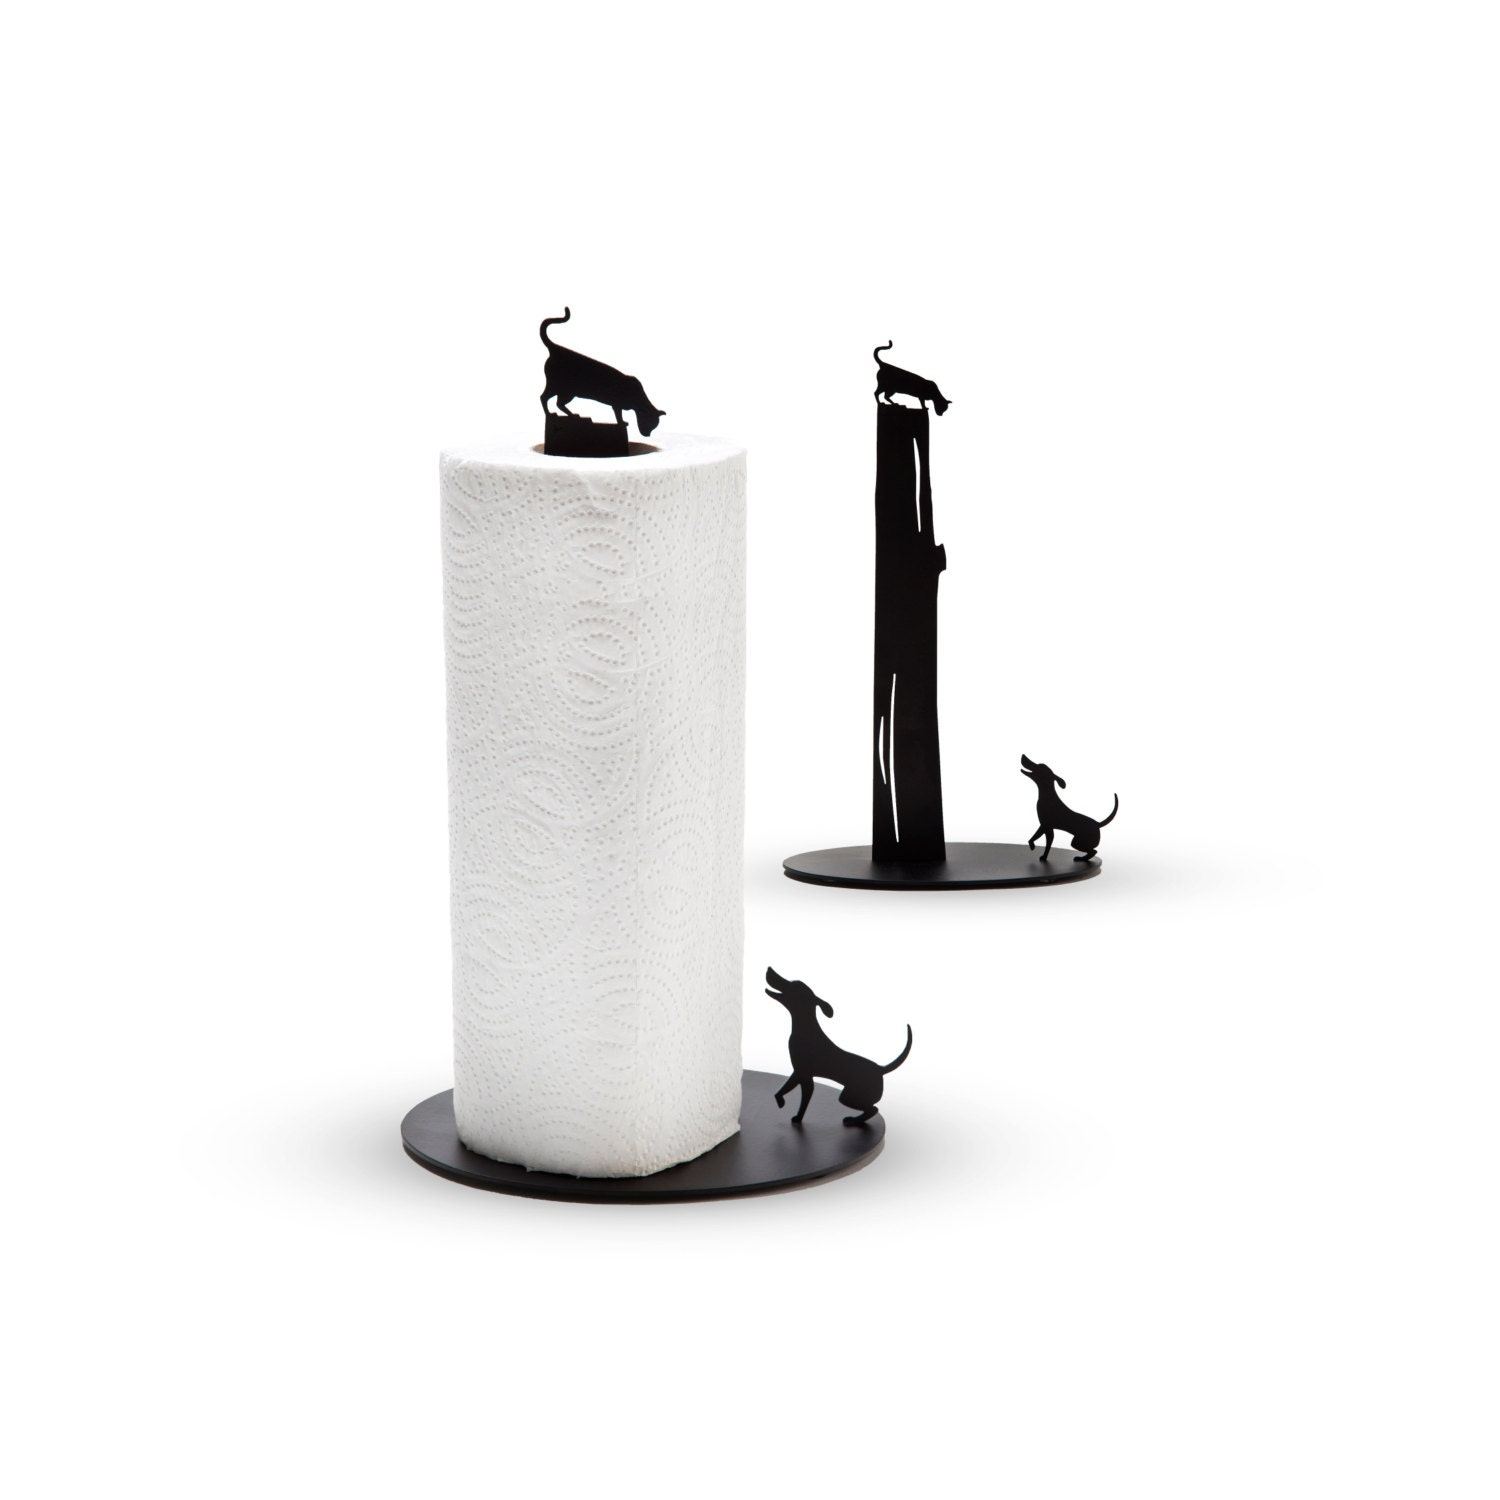 Dog Vs Cat Metal Paper Towel Holder By Artori Design. Carrara Marble Kitchen. Contemporary Console Tables. Wicker Stools. The Wooden Duck. Round Marble Table. Floating Media Console. Mercury Glass Pendant Light. Rustic Beach House